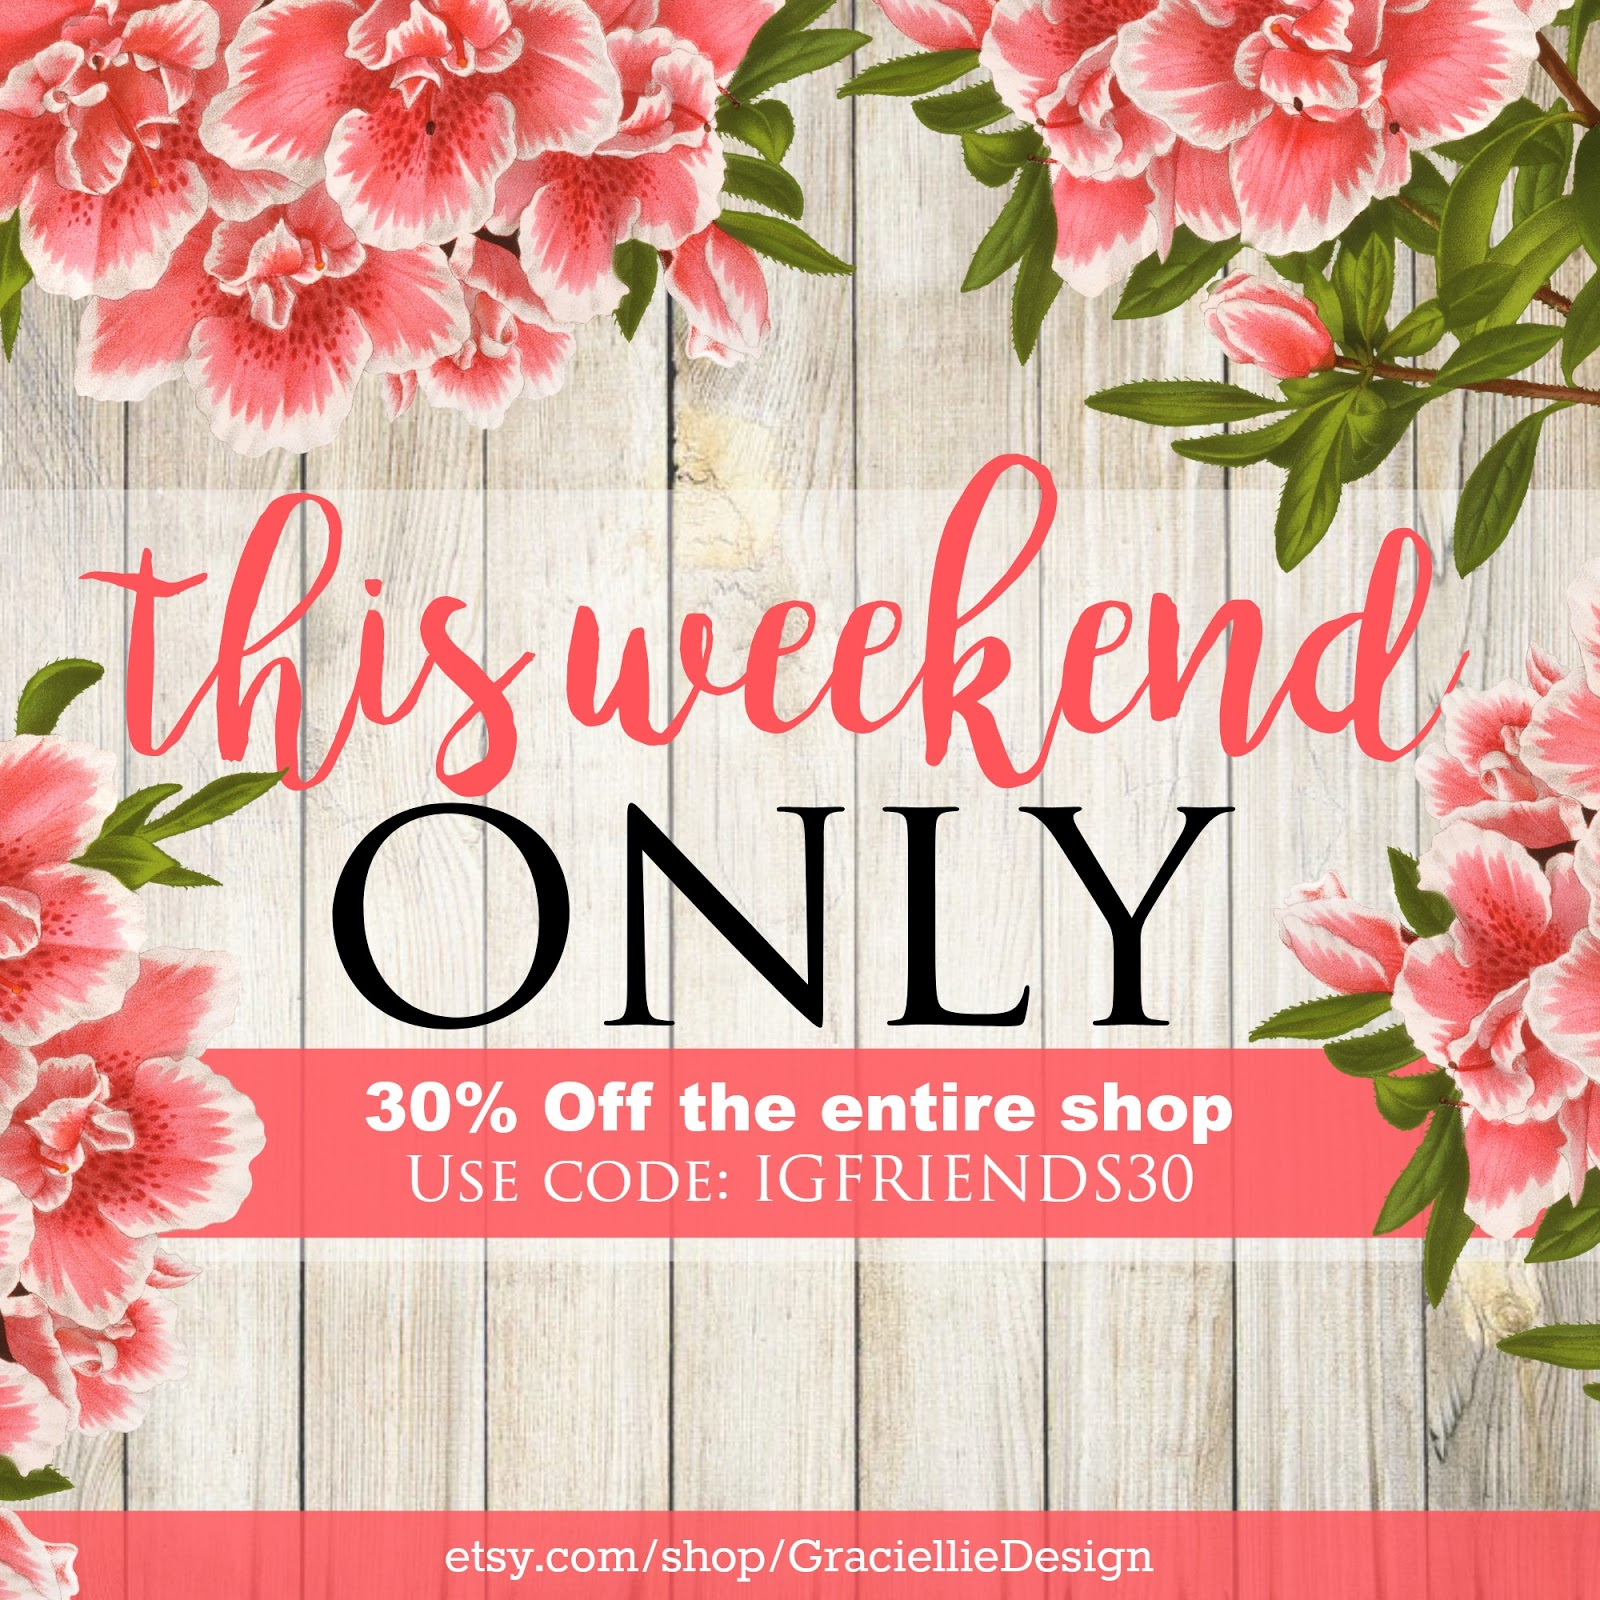 This Weekend Only: 30% OFF Just For You! -This Weekend Only- & Lots Of